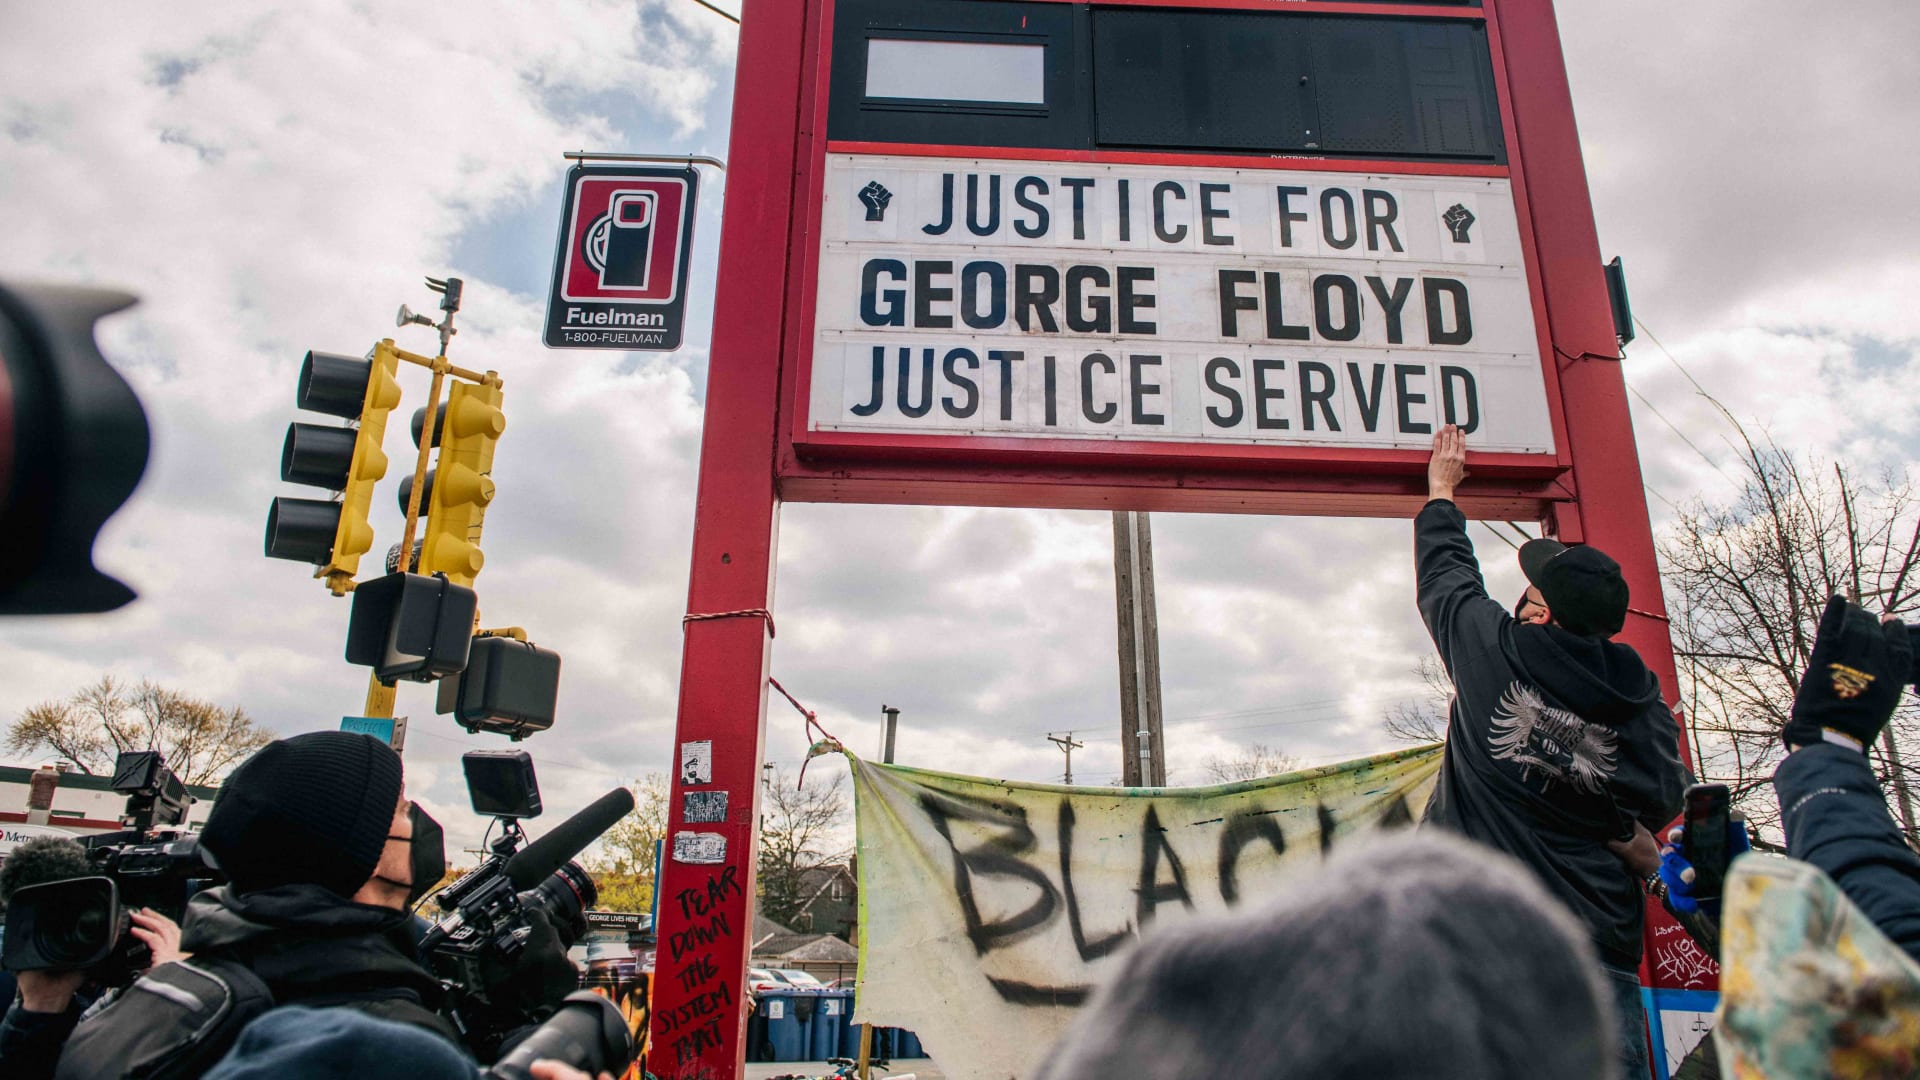 People celebrate the guilty verdict in the Derek Chauvin trail at the intersection of 38th Street and Chicago Avenue on April 20, 2021 in Minneapolis, Minnesota.